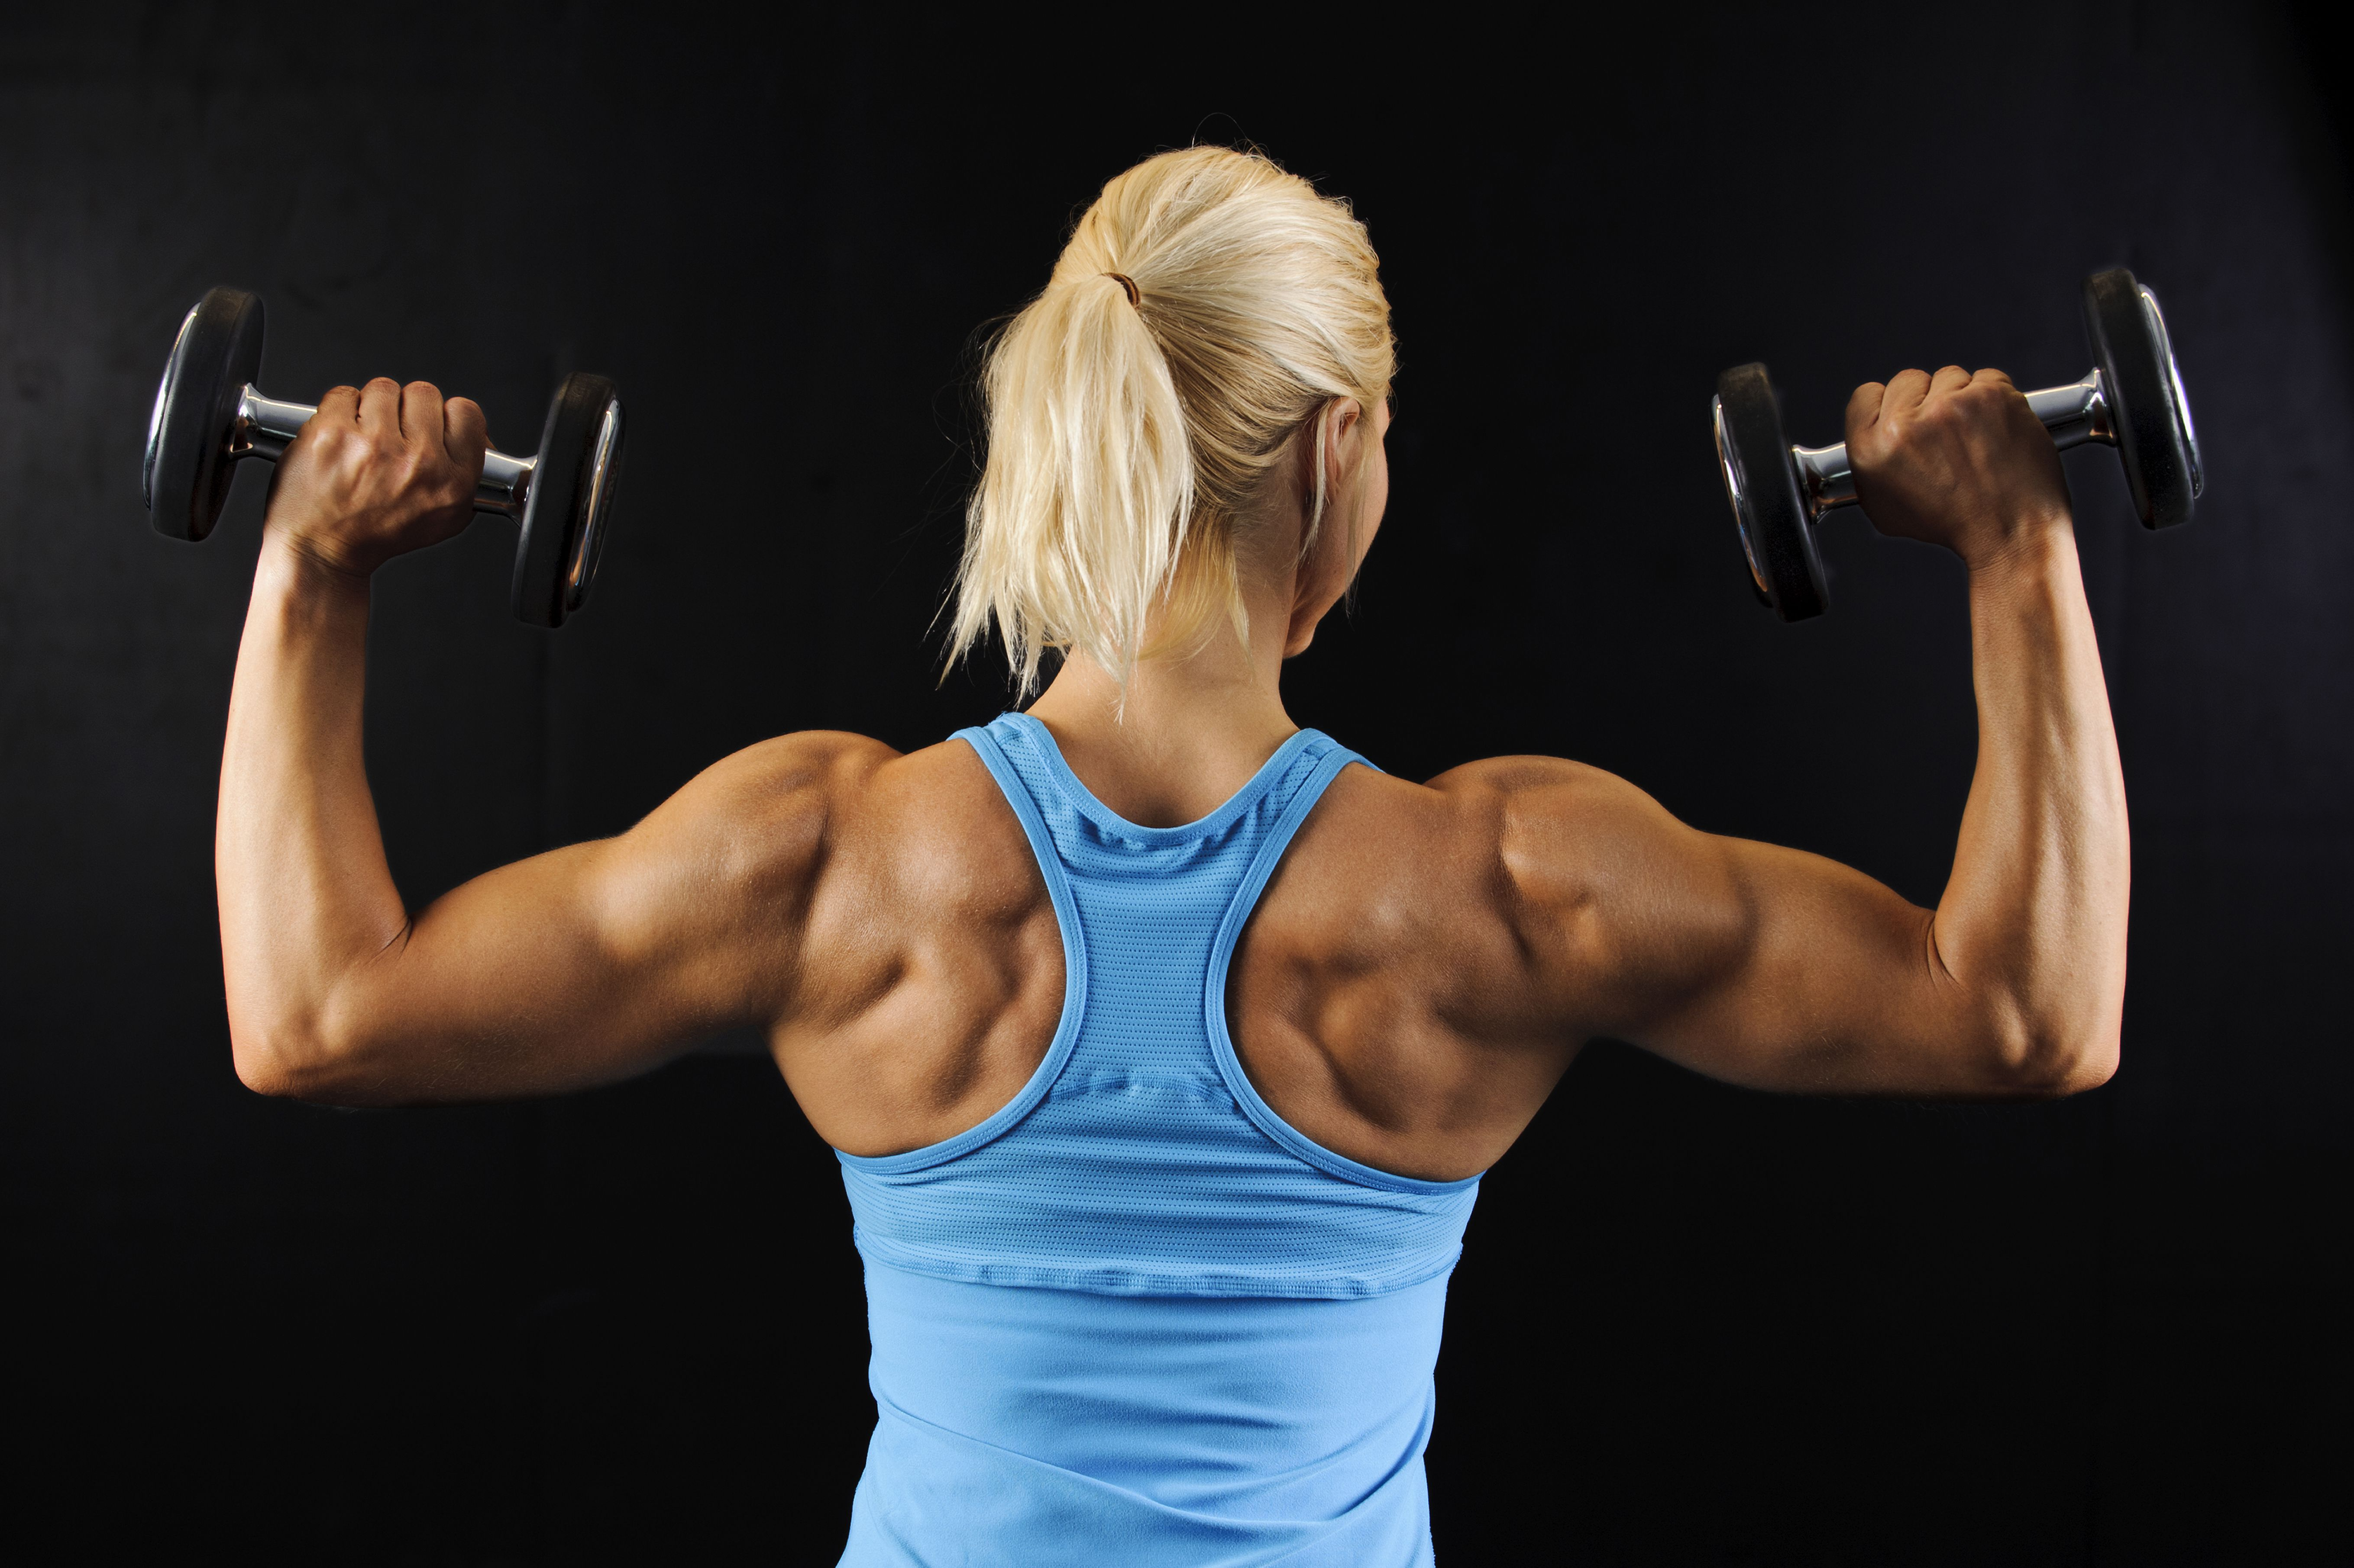 Anabolism and Catabolism: Definition and Examples